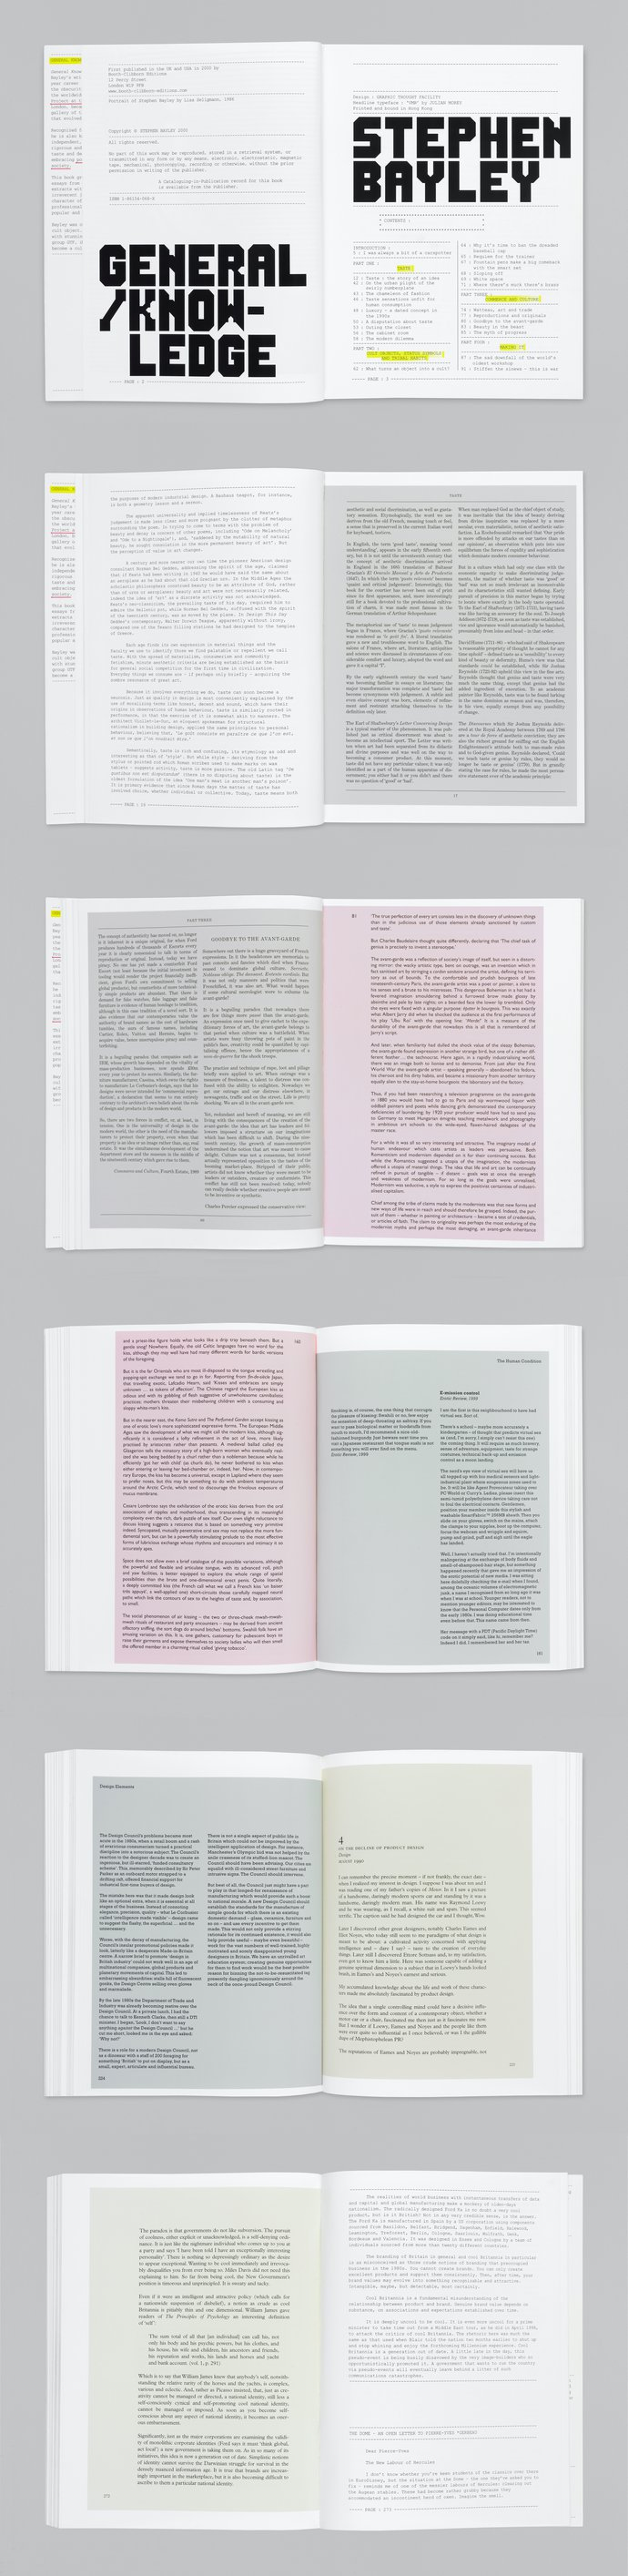 Booth-Clibborn Editions – Stephen Bayley: General Knowledge, 2000 (Publication), image 3